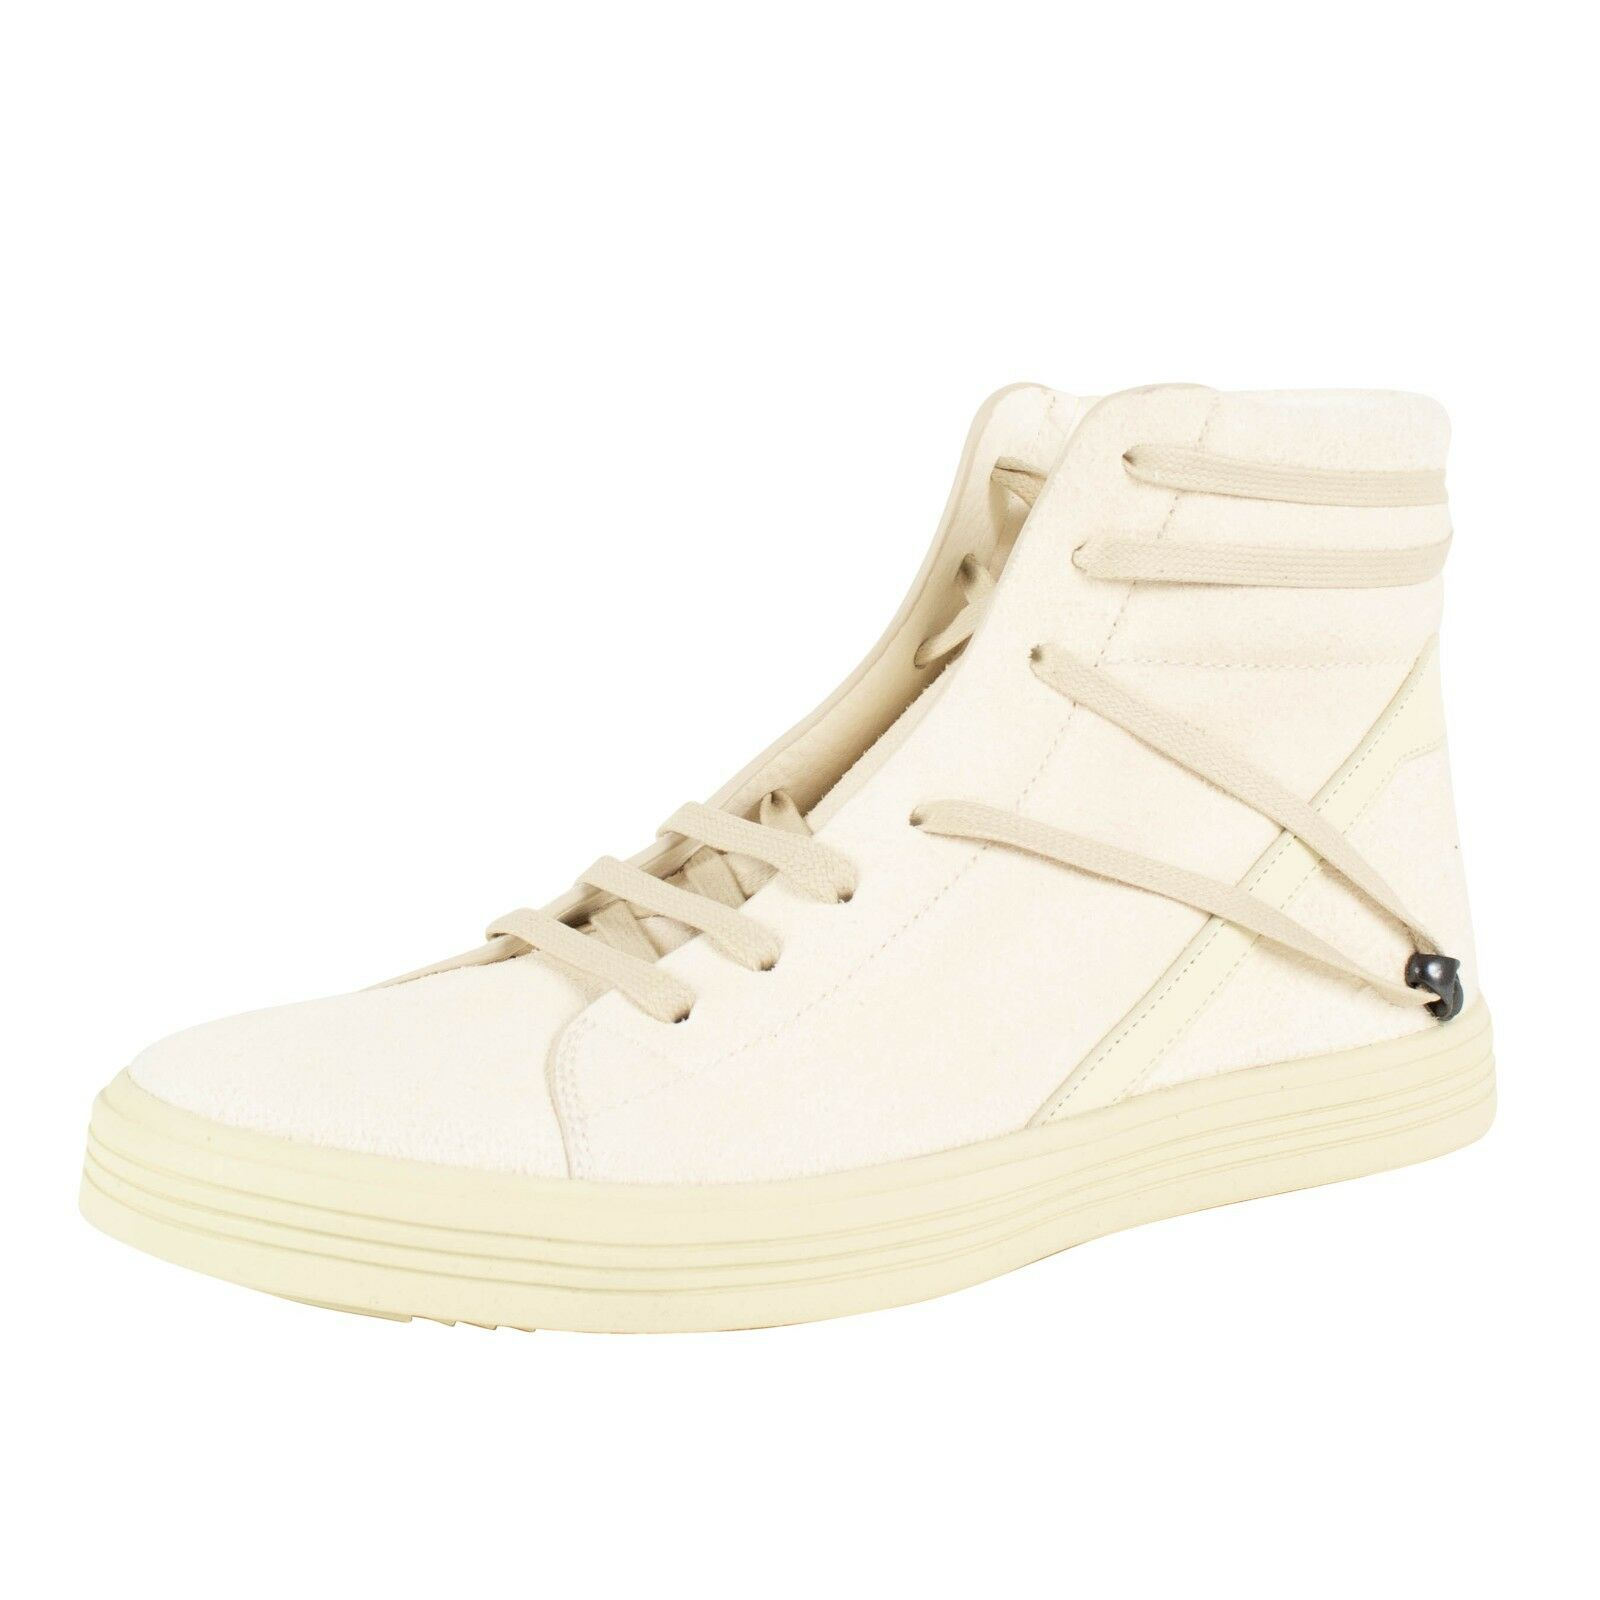 NIB RICK OWENS 'Geothrasher High Natural' Leather Sneakers shoes Size 8 41  1100